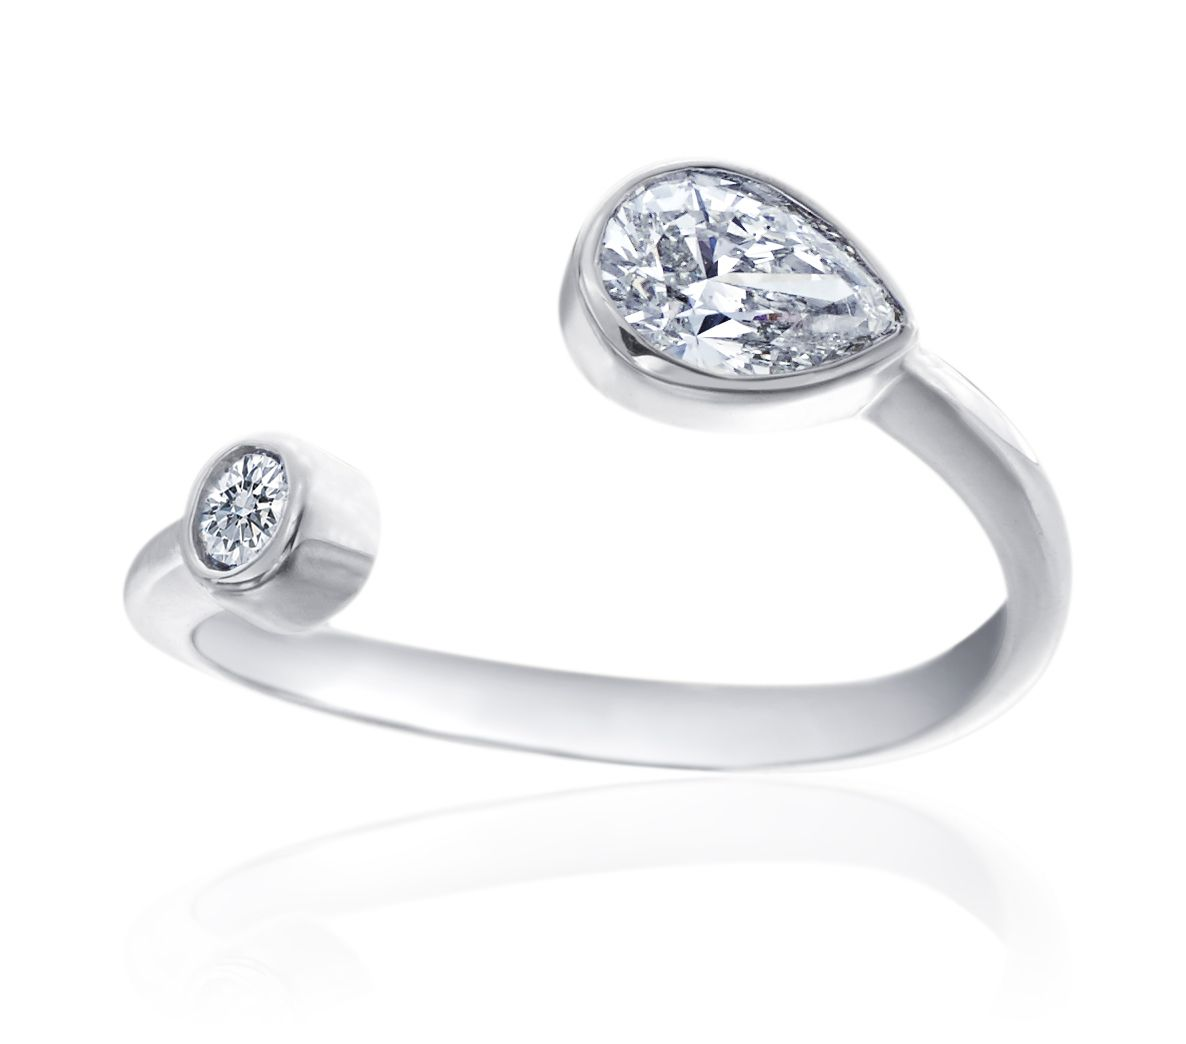 Diamond Delights: 6 Jewels From A. Link – JCK